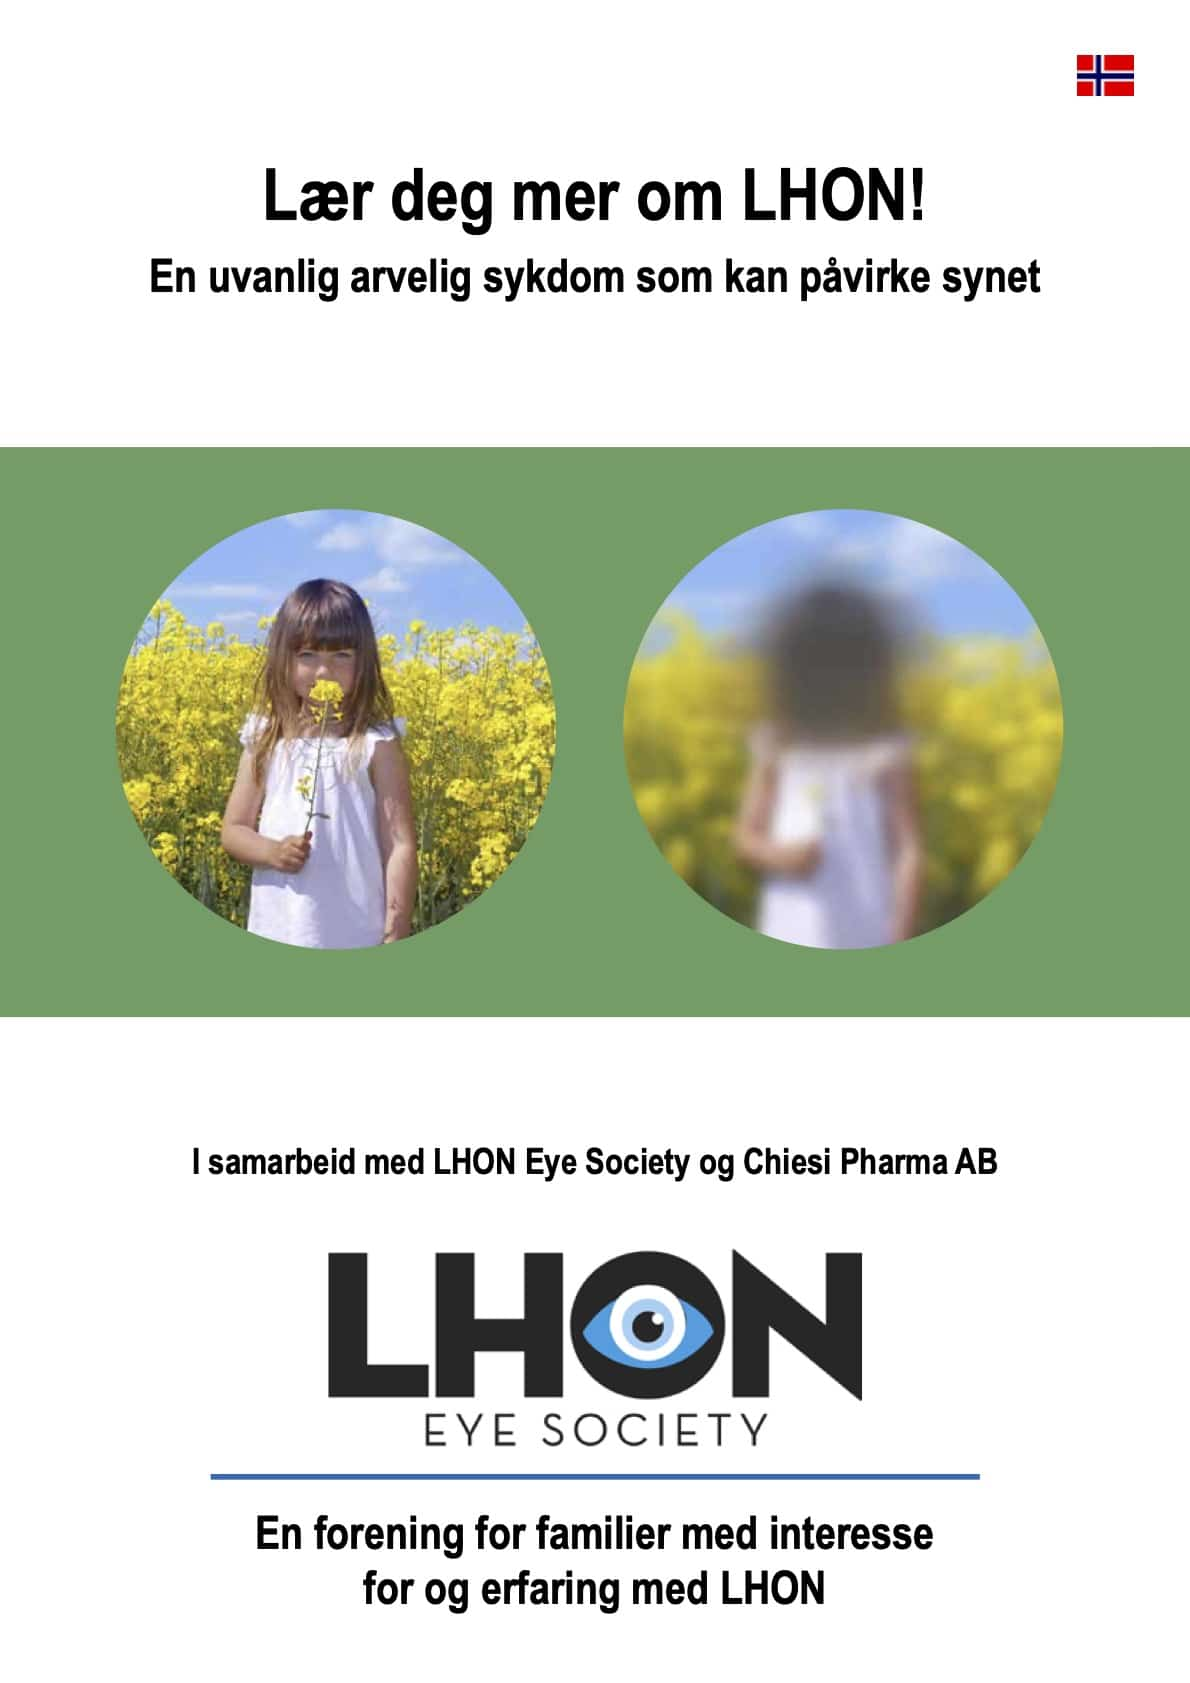 cover image for brochure about LHON in Norwegian